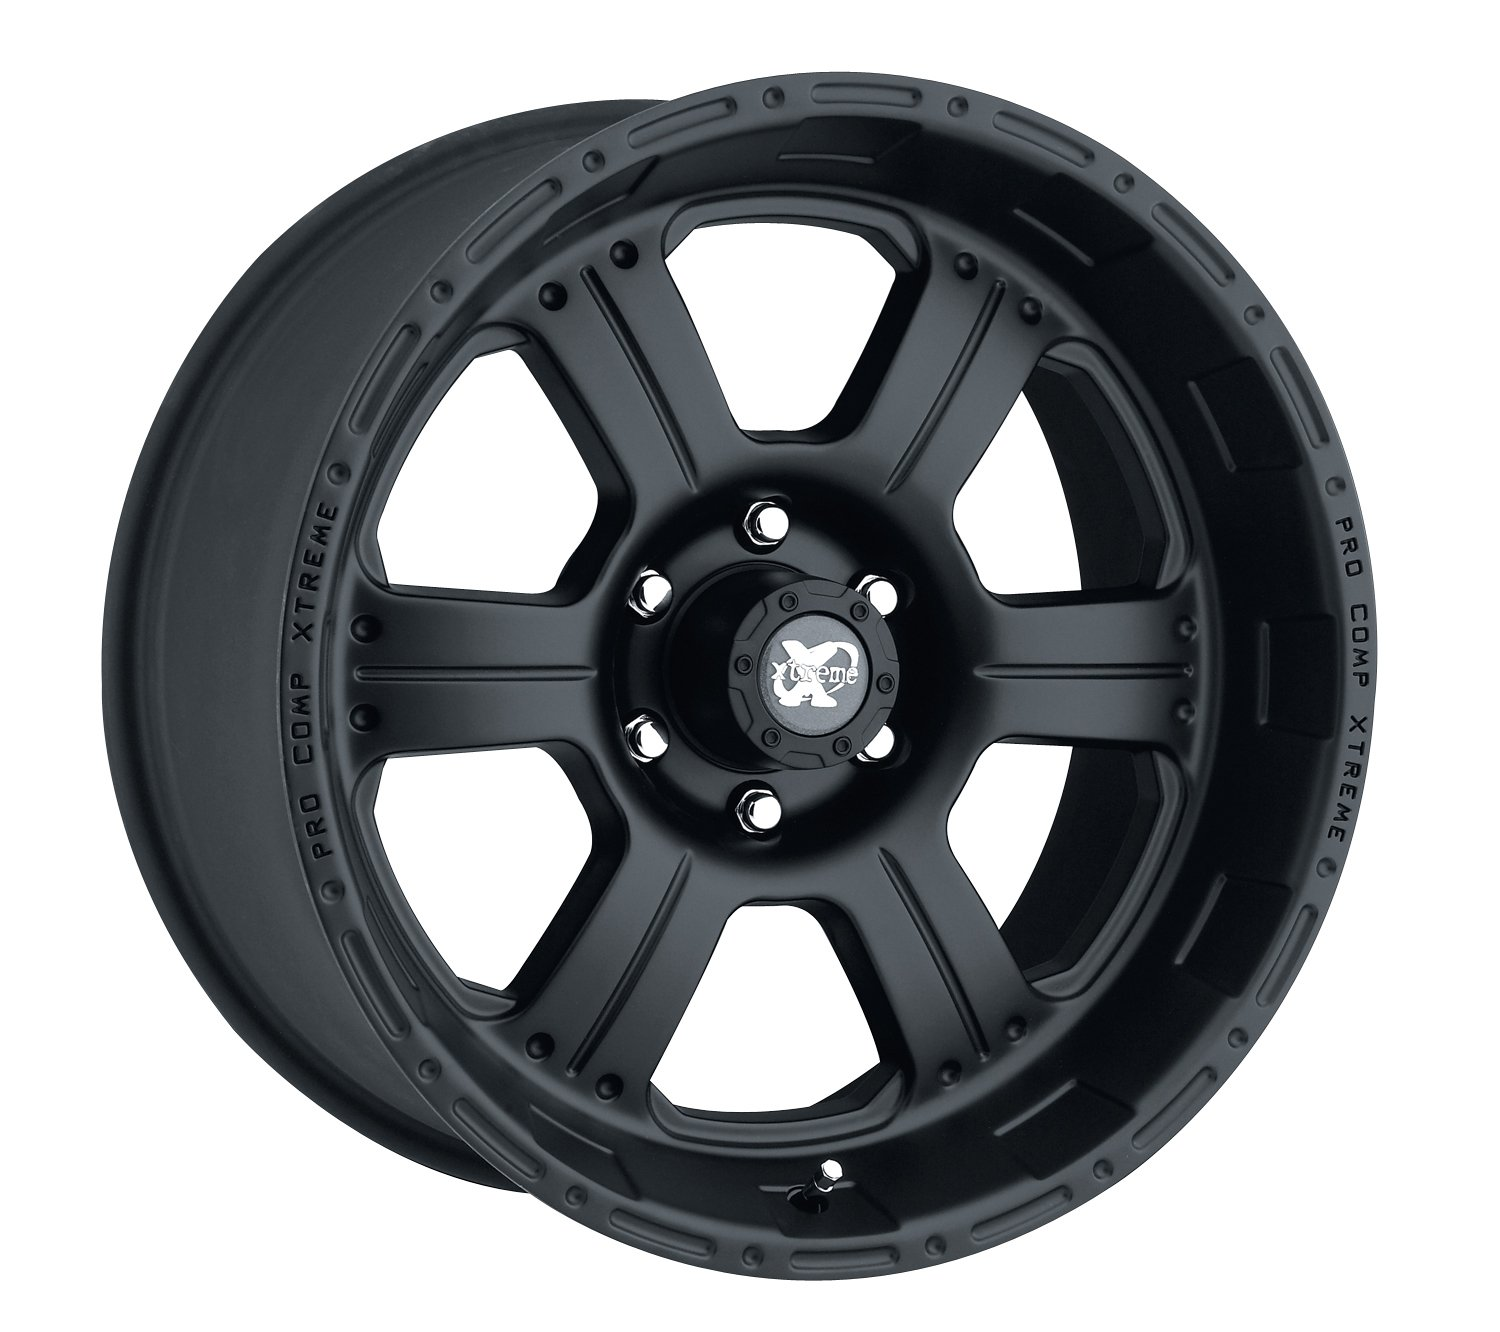 Pro Comp Alloys Series 89 Wheel with Flat Black Finish (17x8''/5x114.3mm)